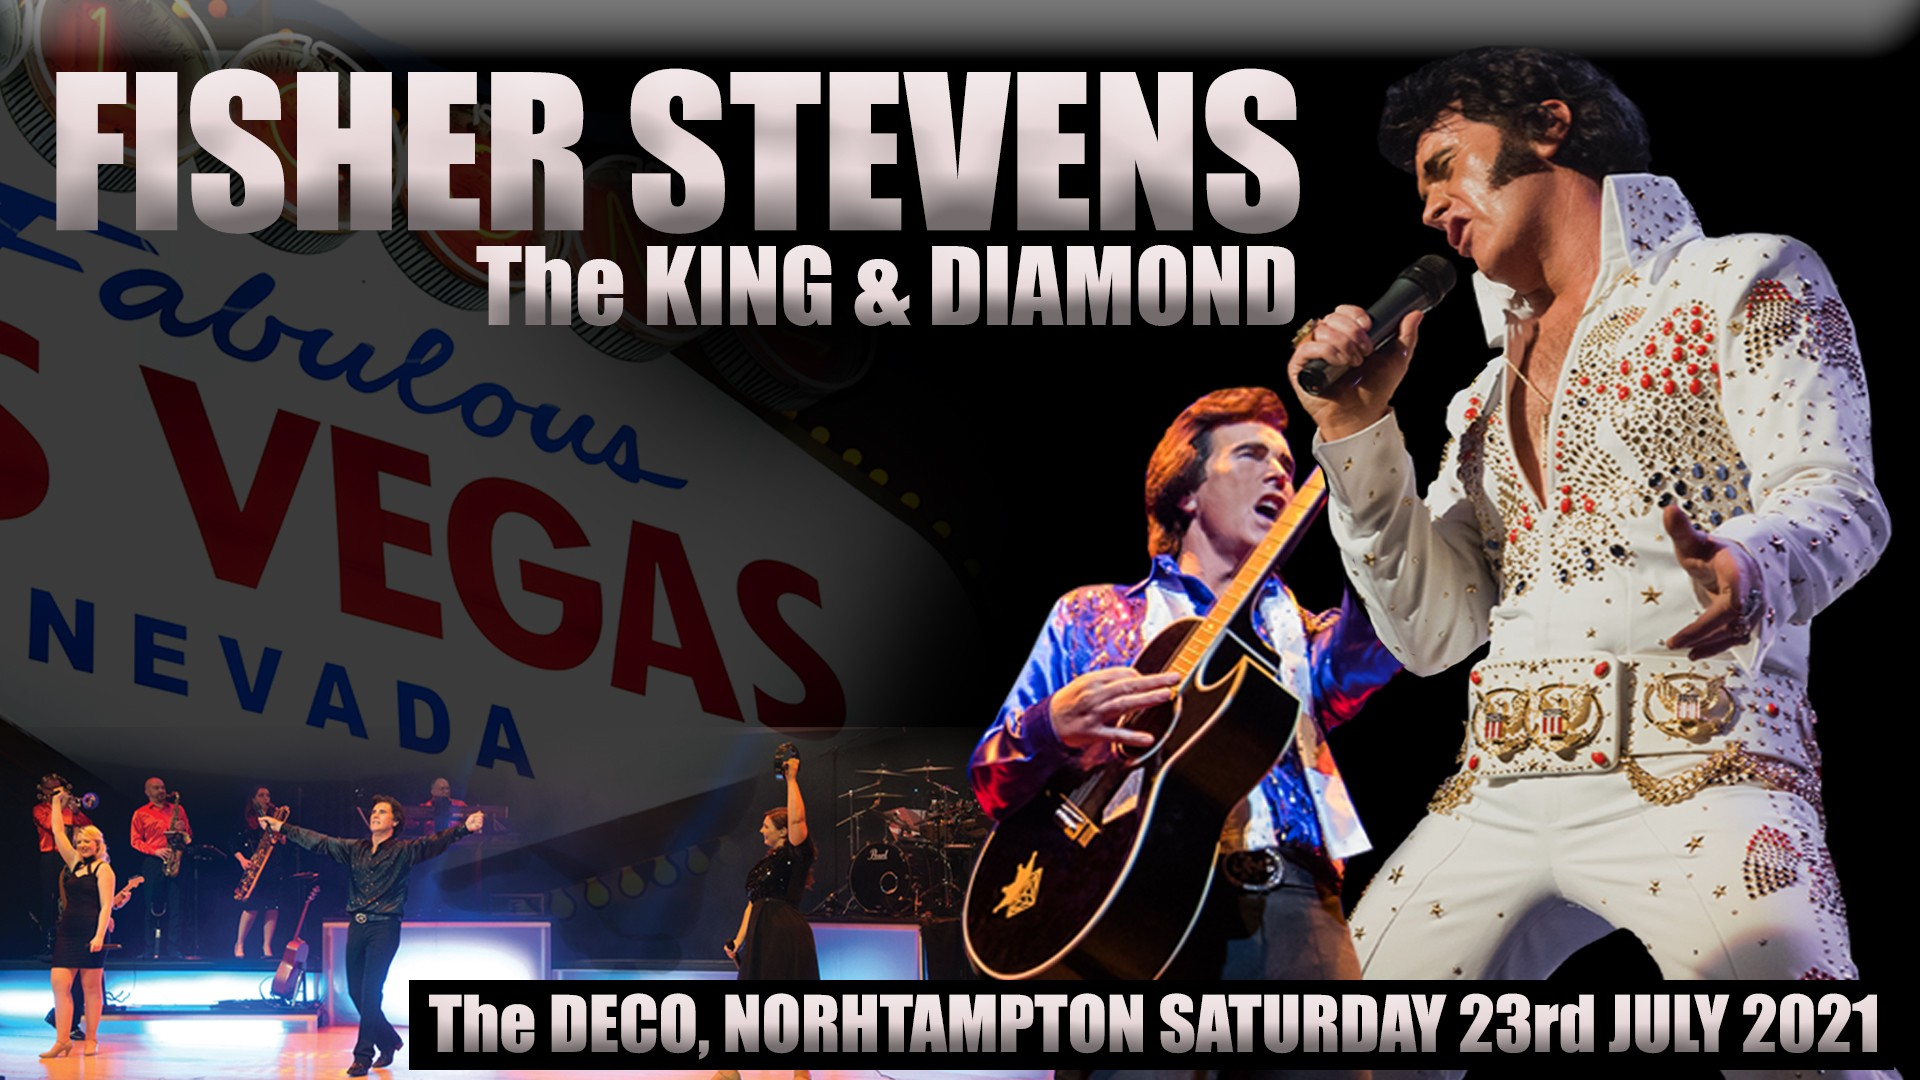 The King and Diamond show with Fisher Stevens